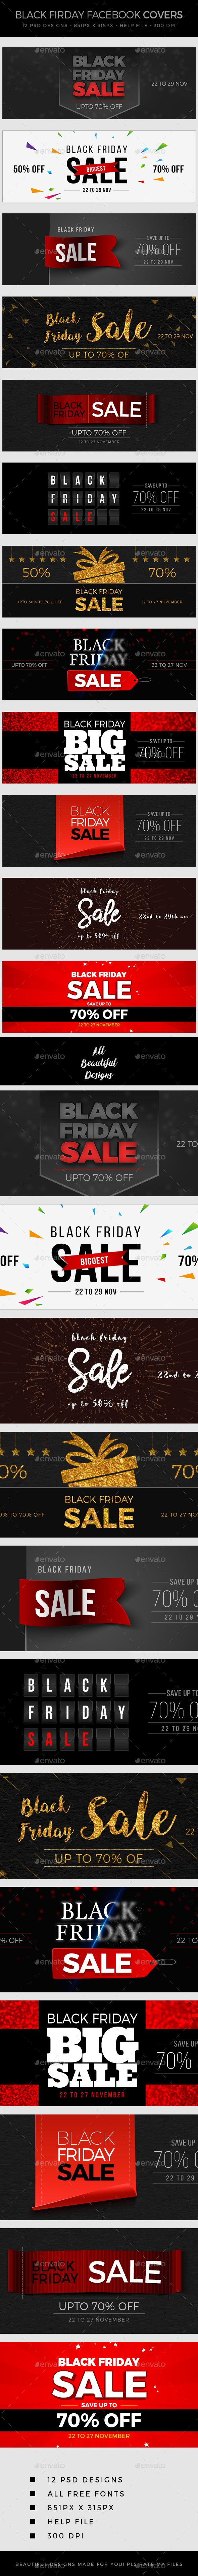 Black Friday Sale Facebook Cover Templates PSD